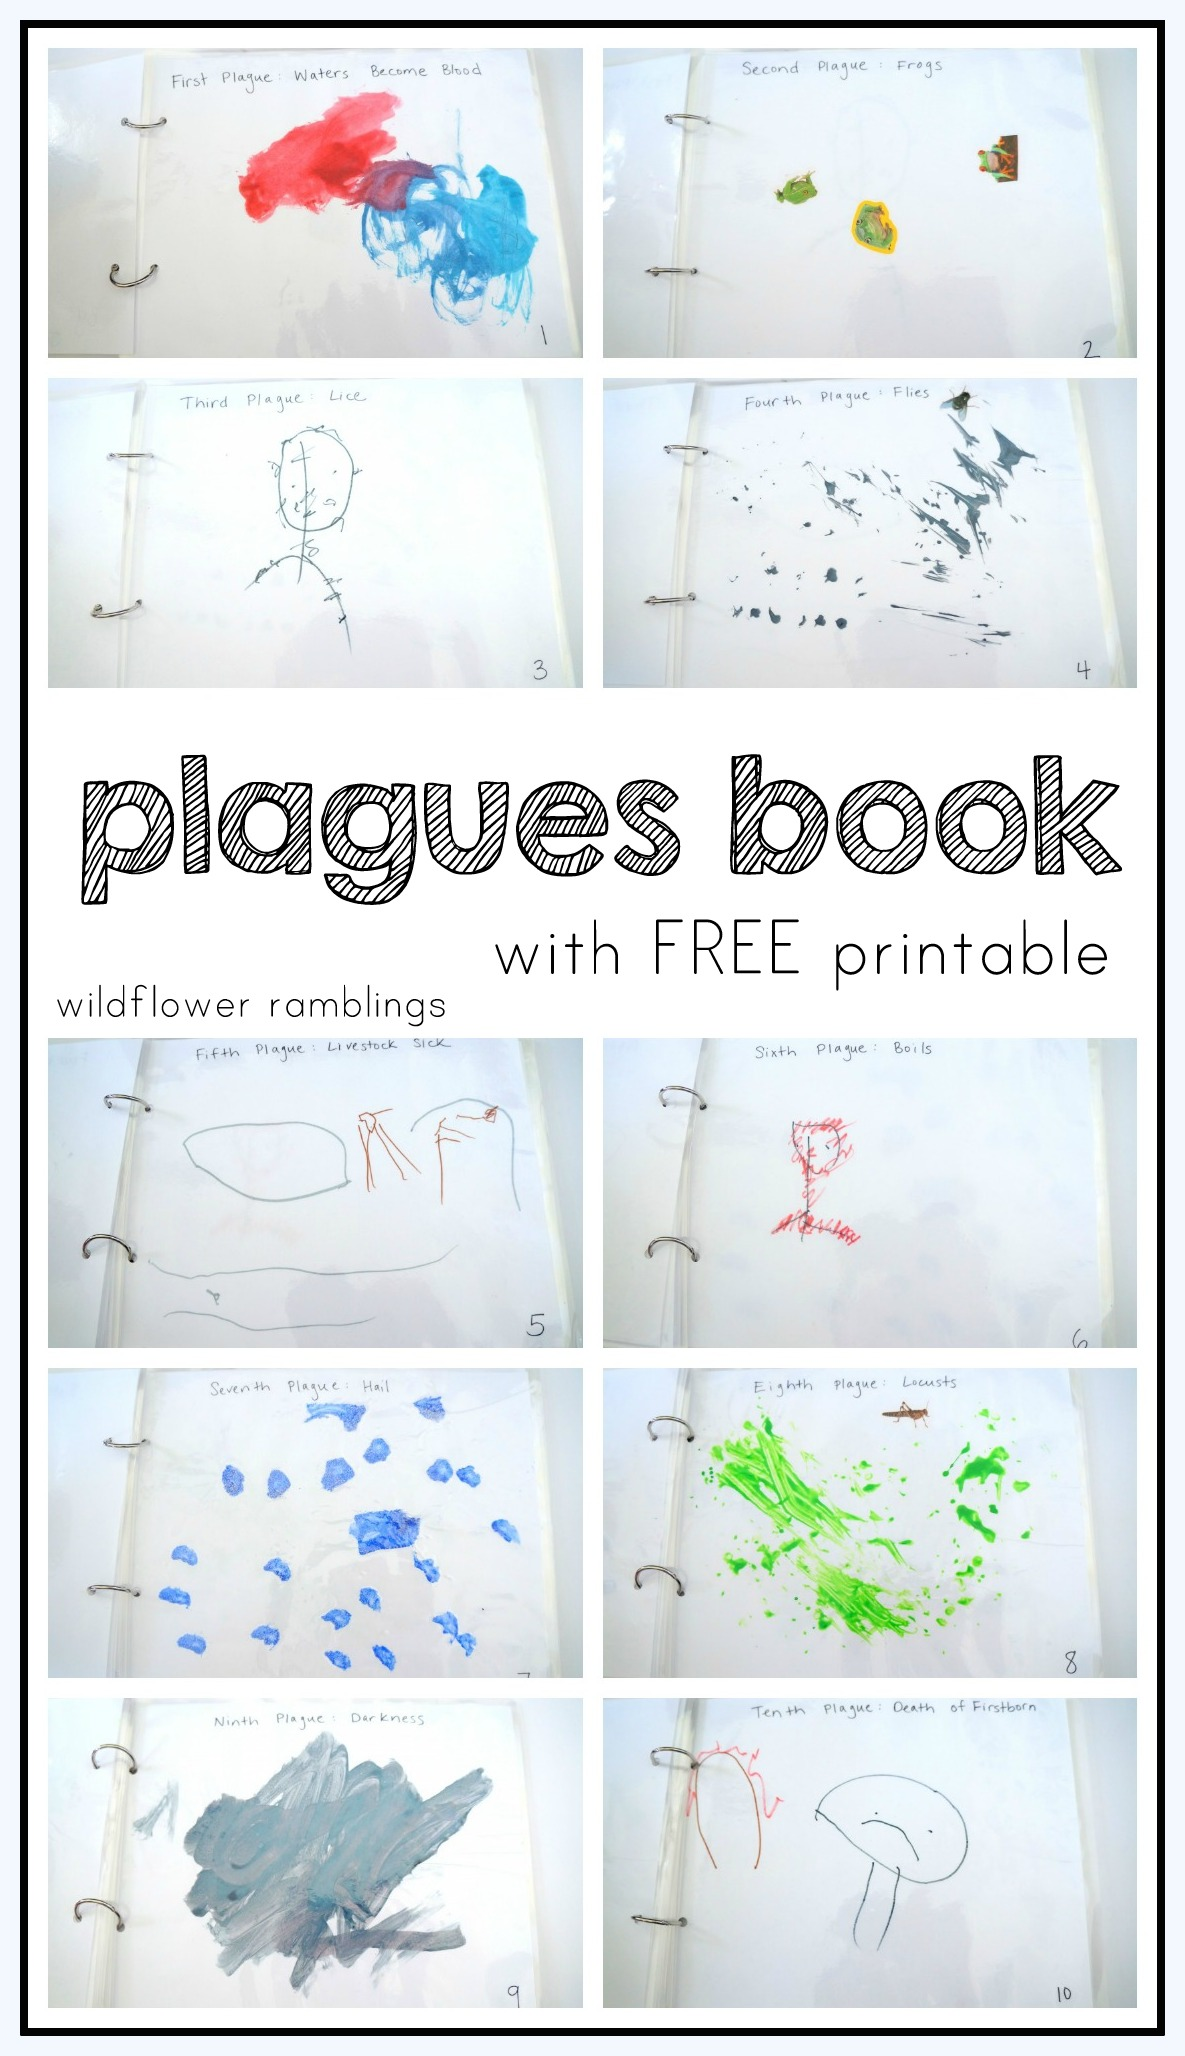 It's just a photo of Sweet 10 Plagues Printable